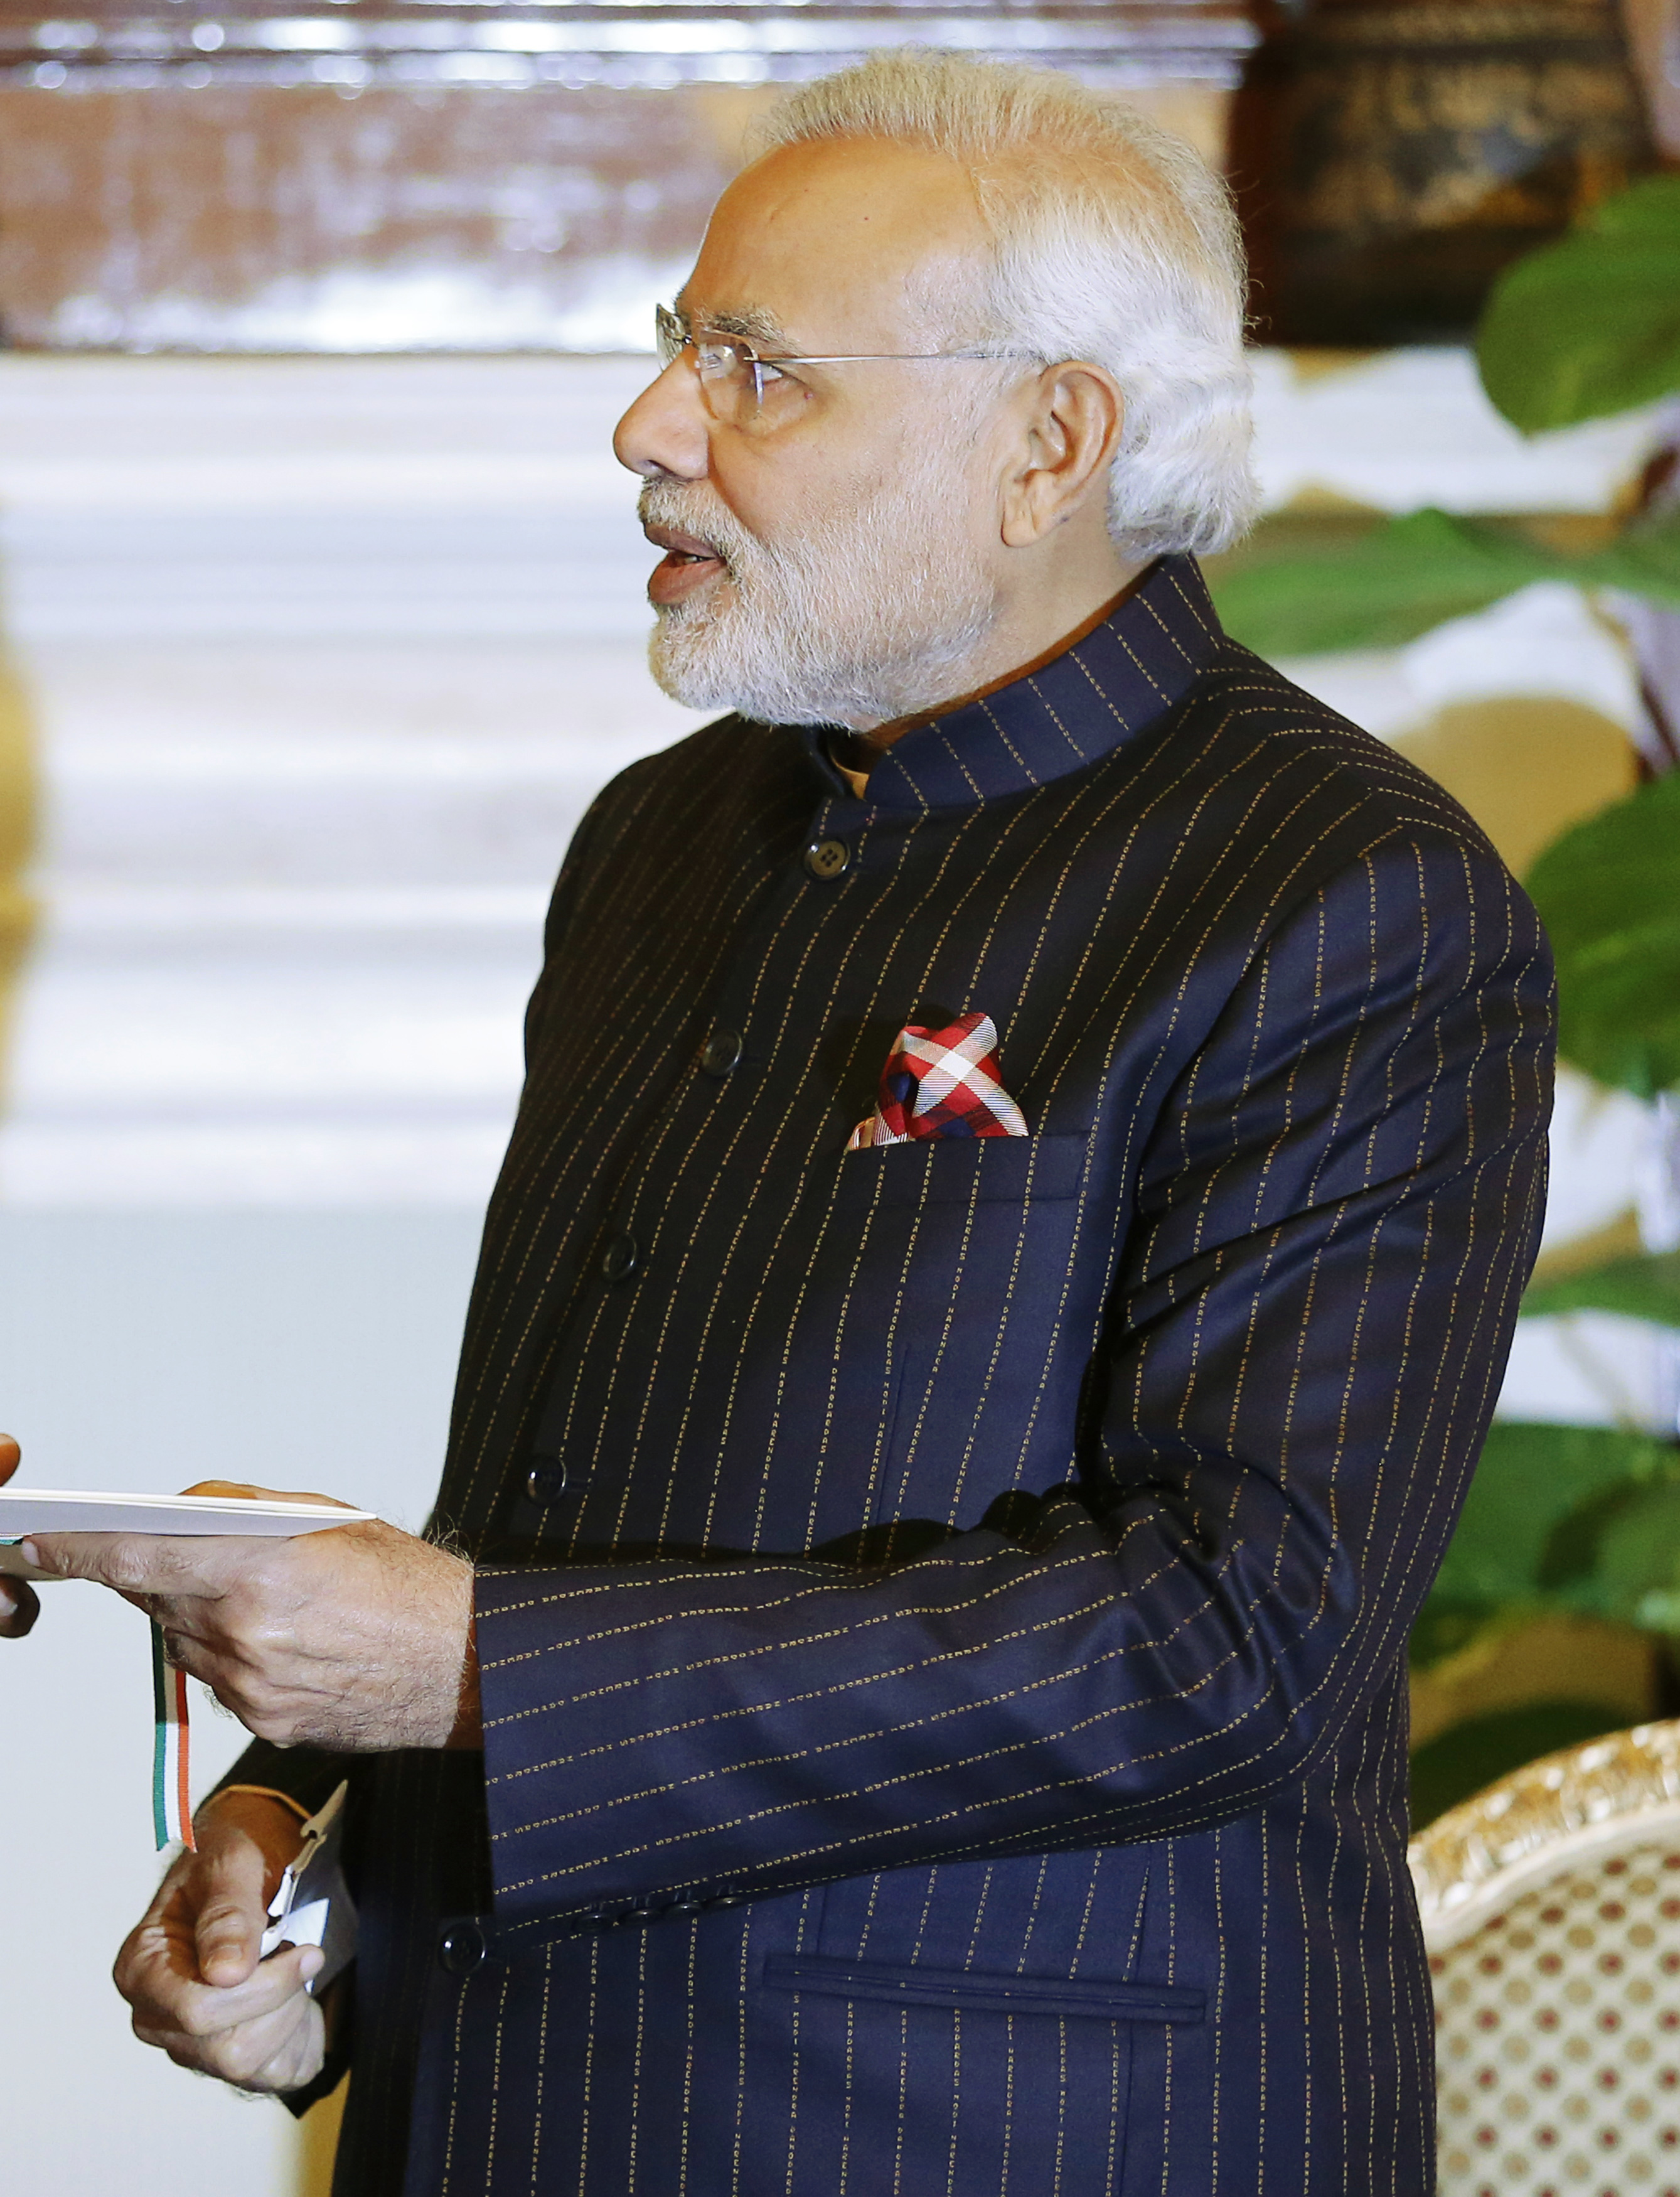 Indian Prime Minister Narenda Modi, wearing a dark pinstripe suit embroidered with his name, meets with U.S. President Barack Obama at Hyderabad House in New Delhi on Jan. 25, 2015